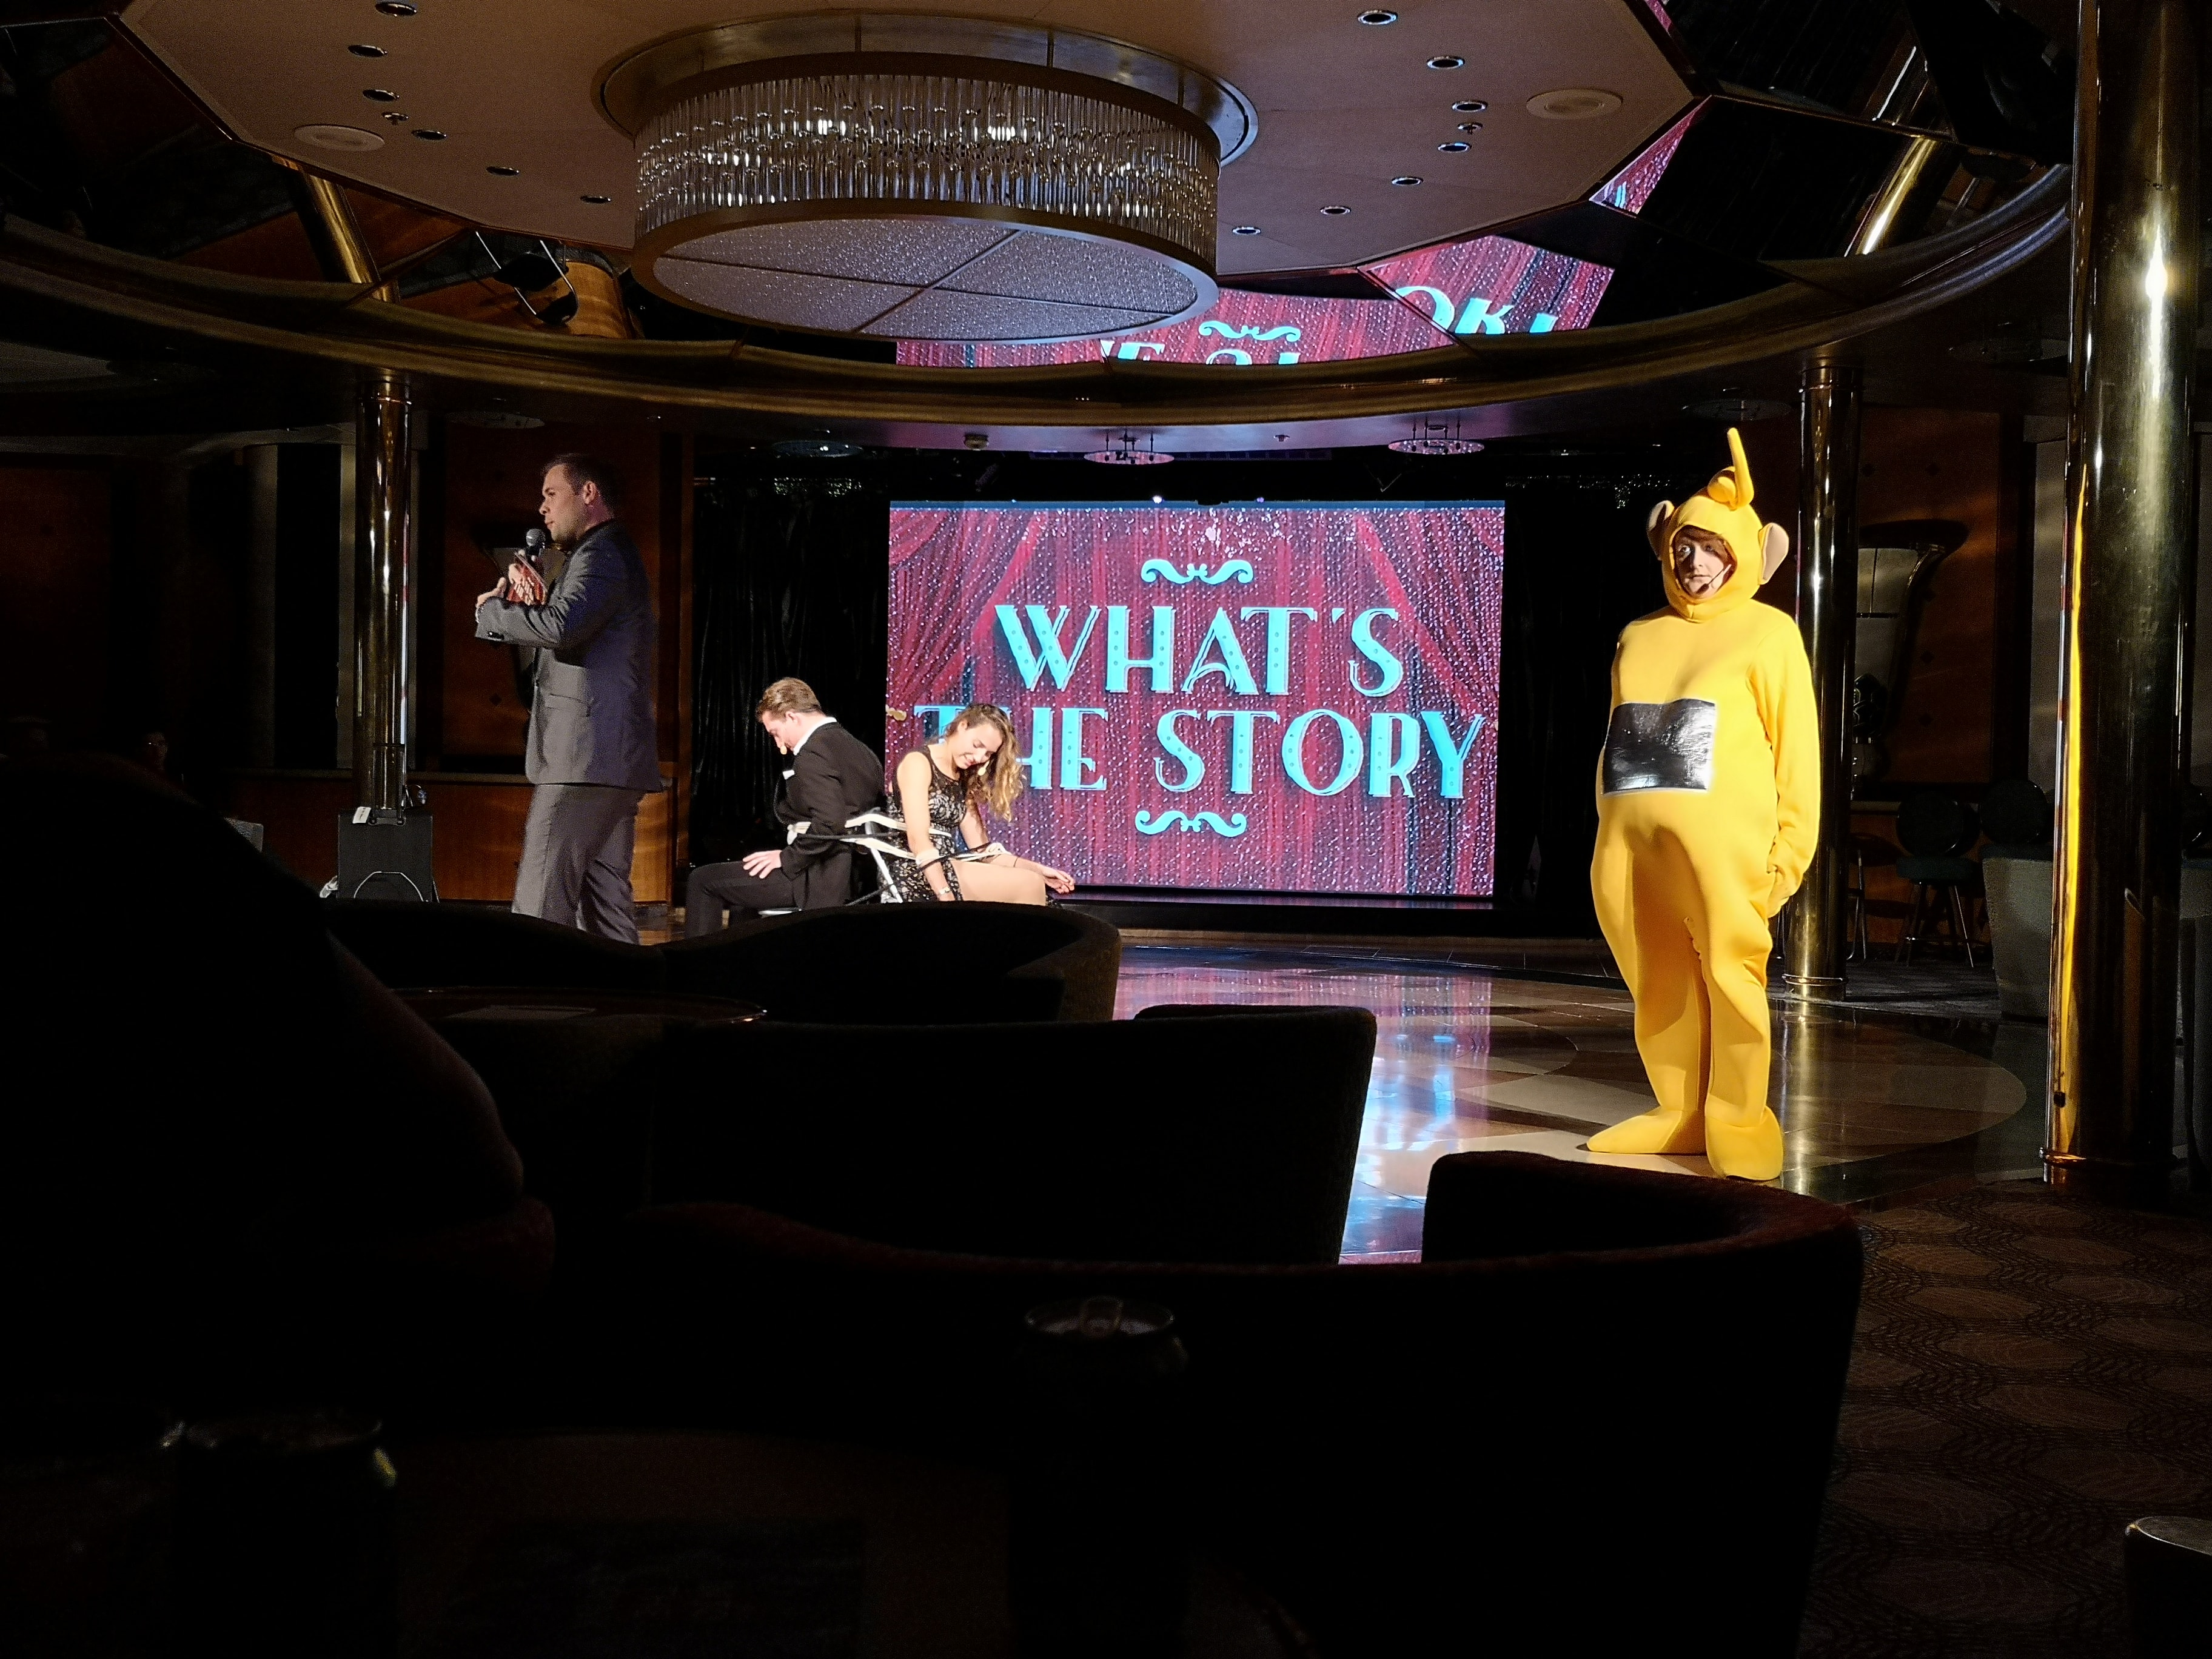 Marella Cruises Discovery Entertainment Whats the story gameshow venue